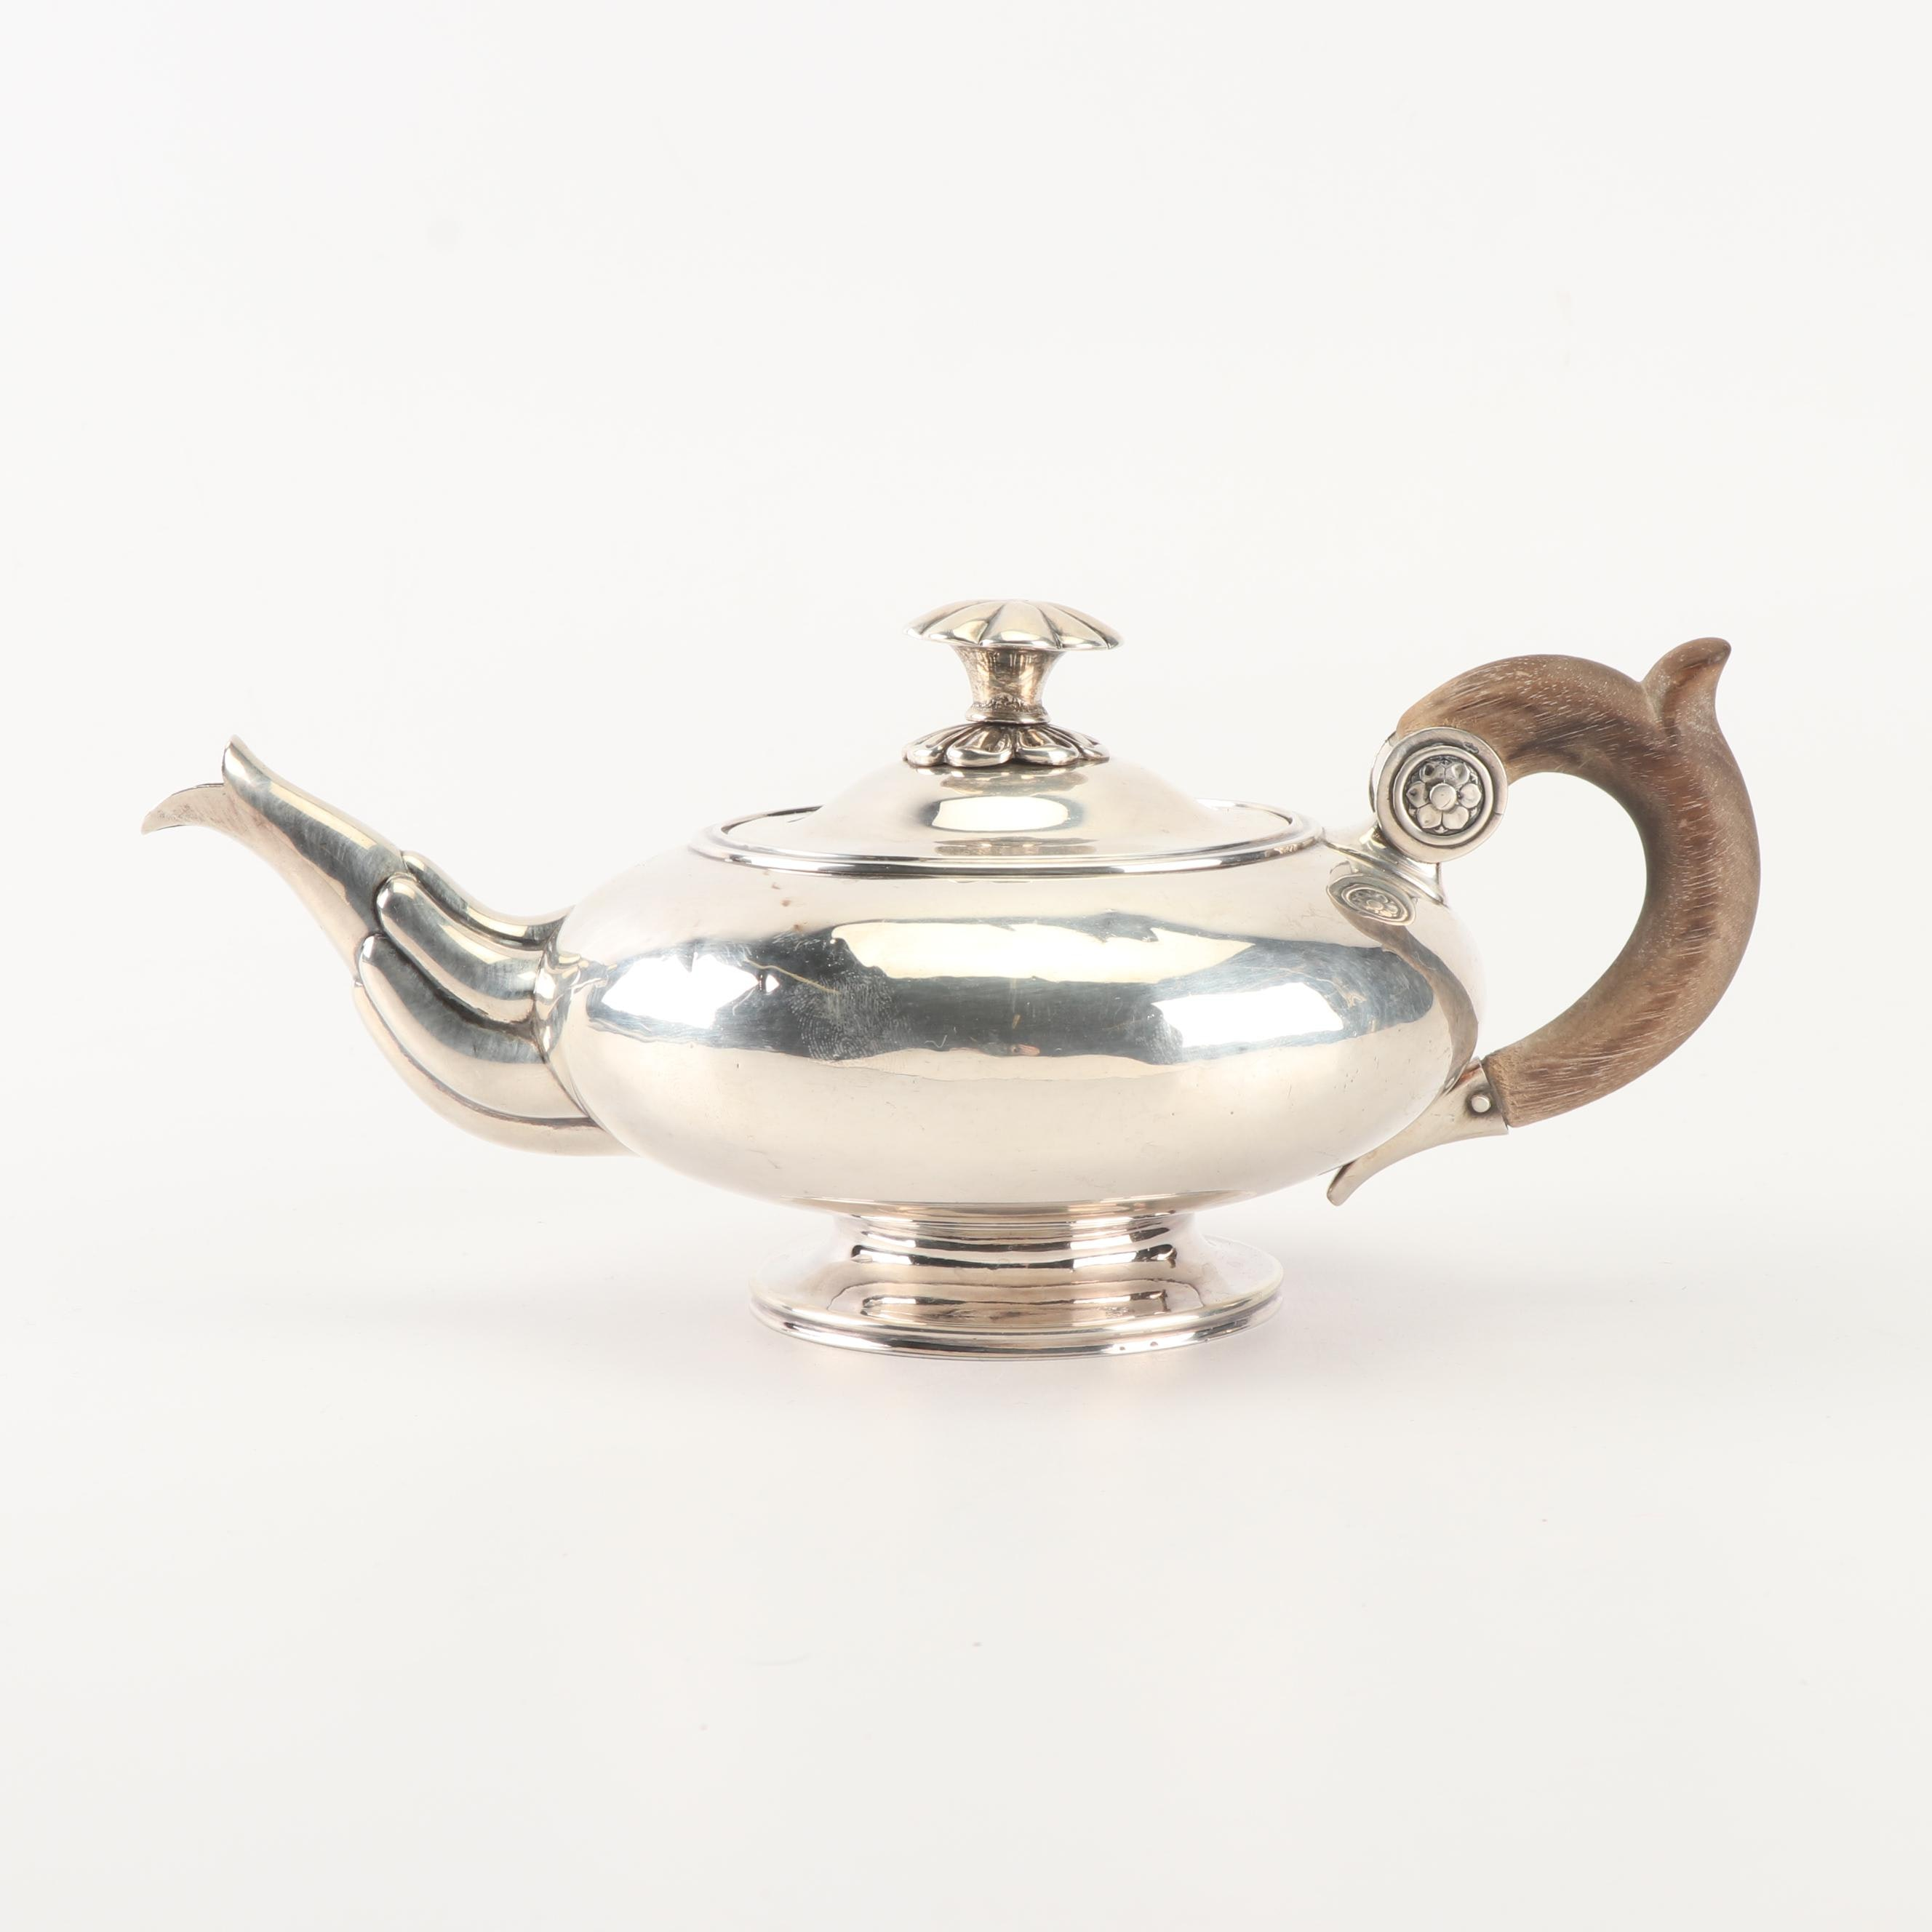 French Silver Teapot, Mark of Angenot & Cie, Paris, Late 19th Century